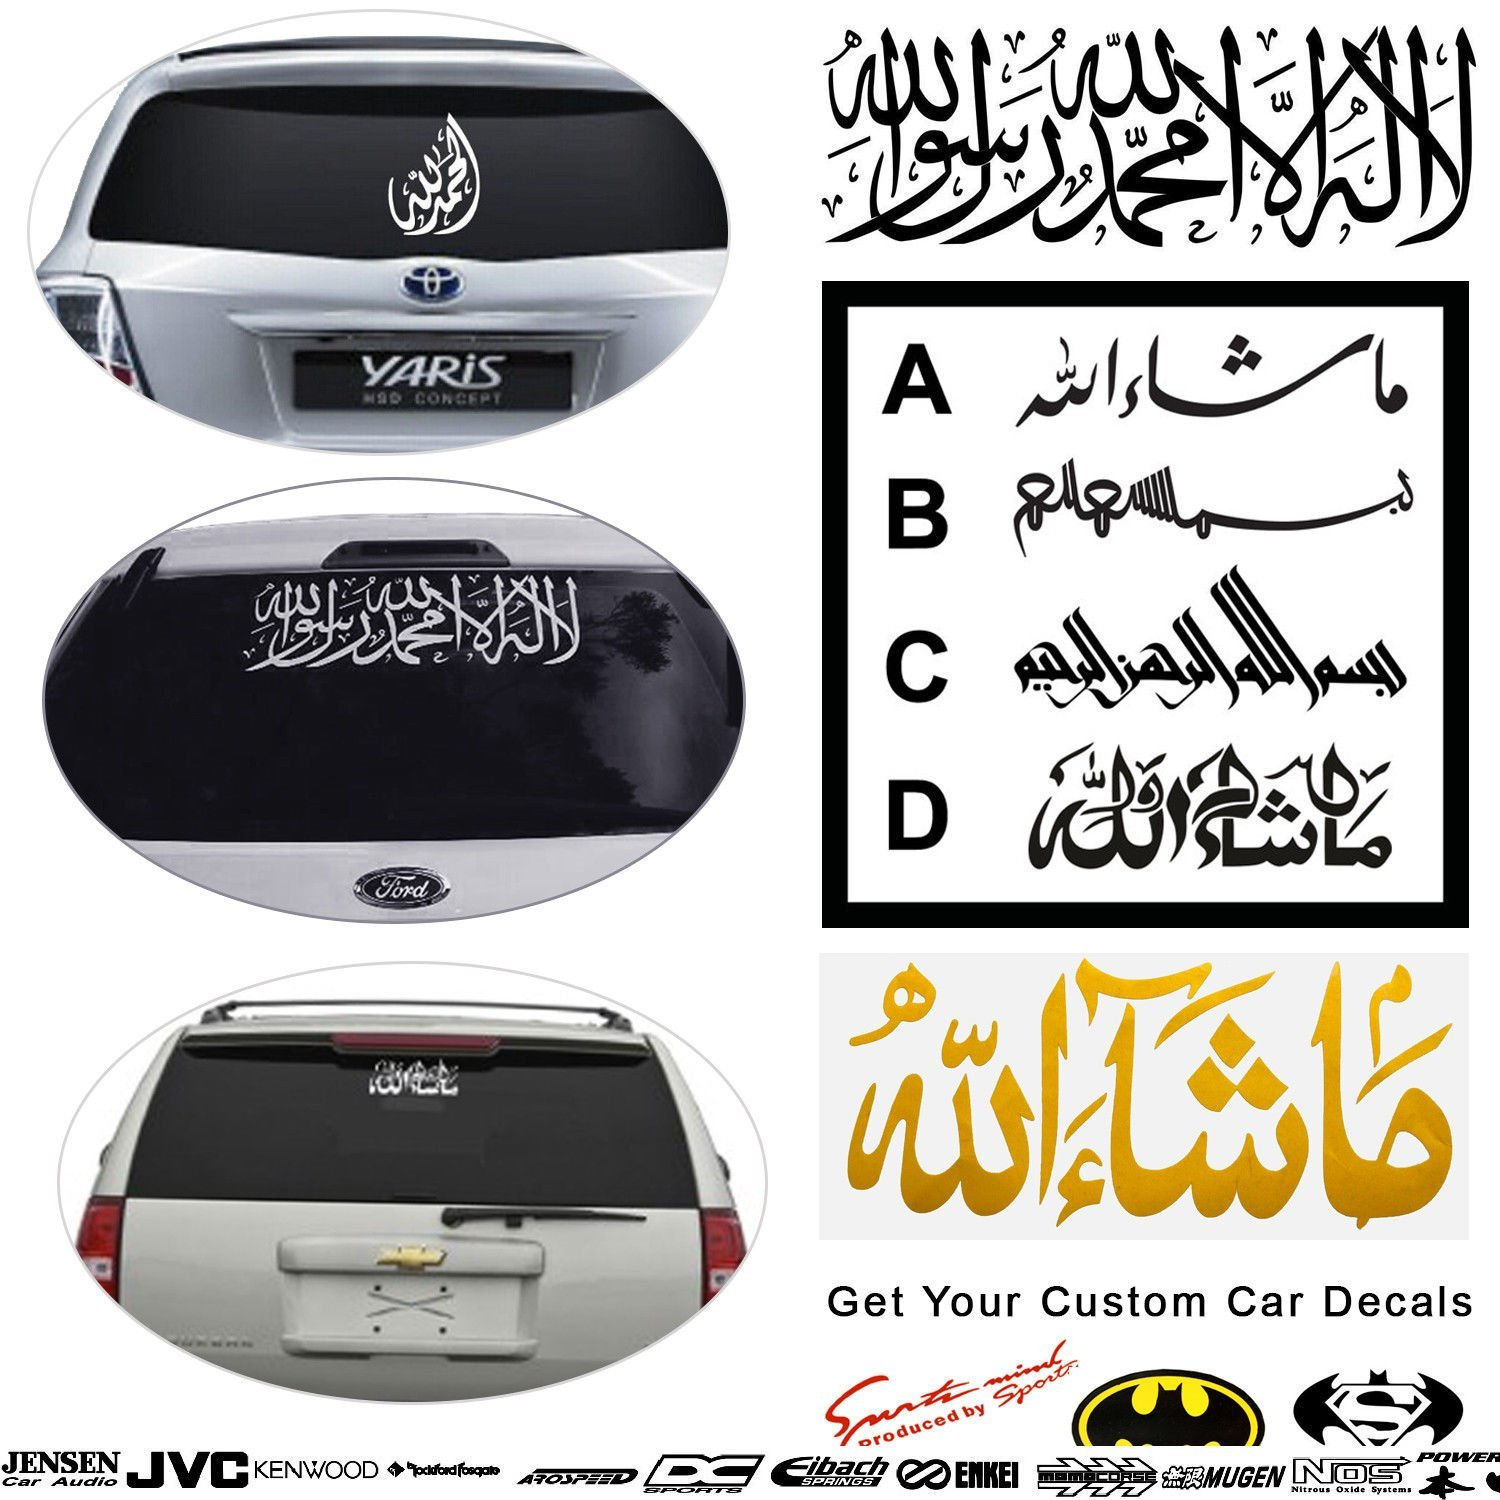 Buy islamic car stickers decals vinyl windscreen bumper decor custom